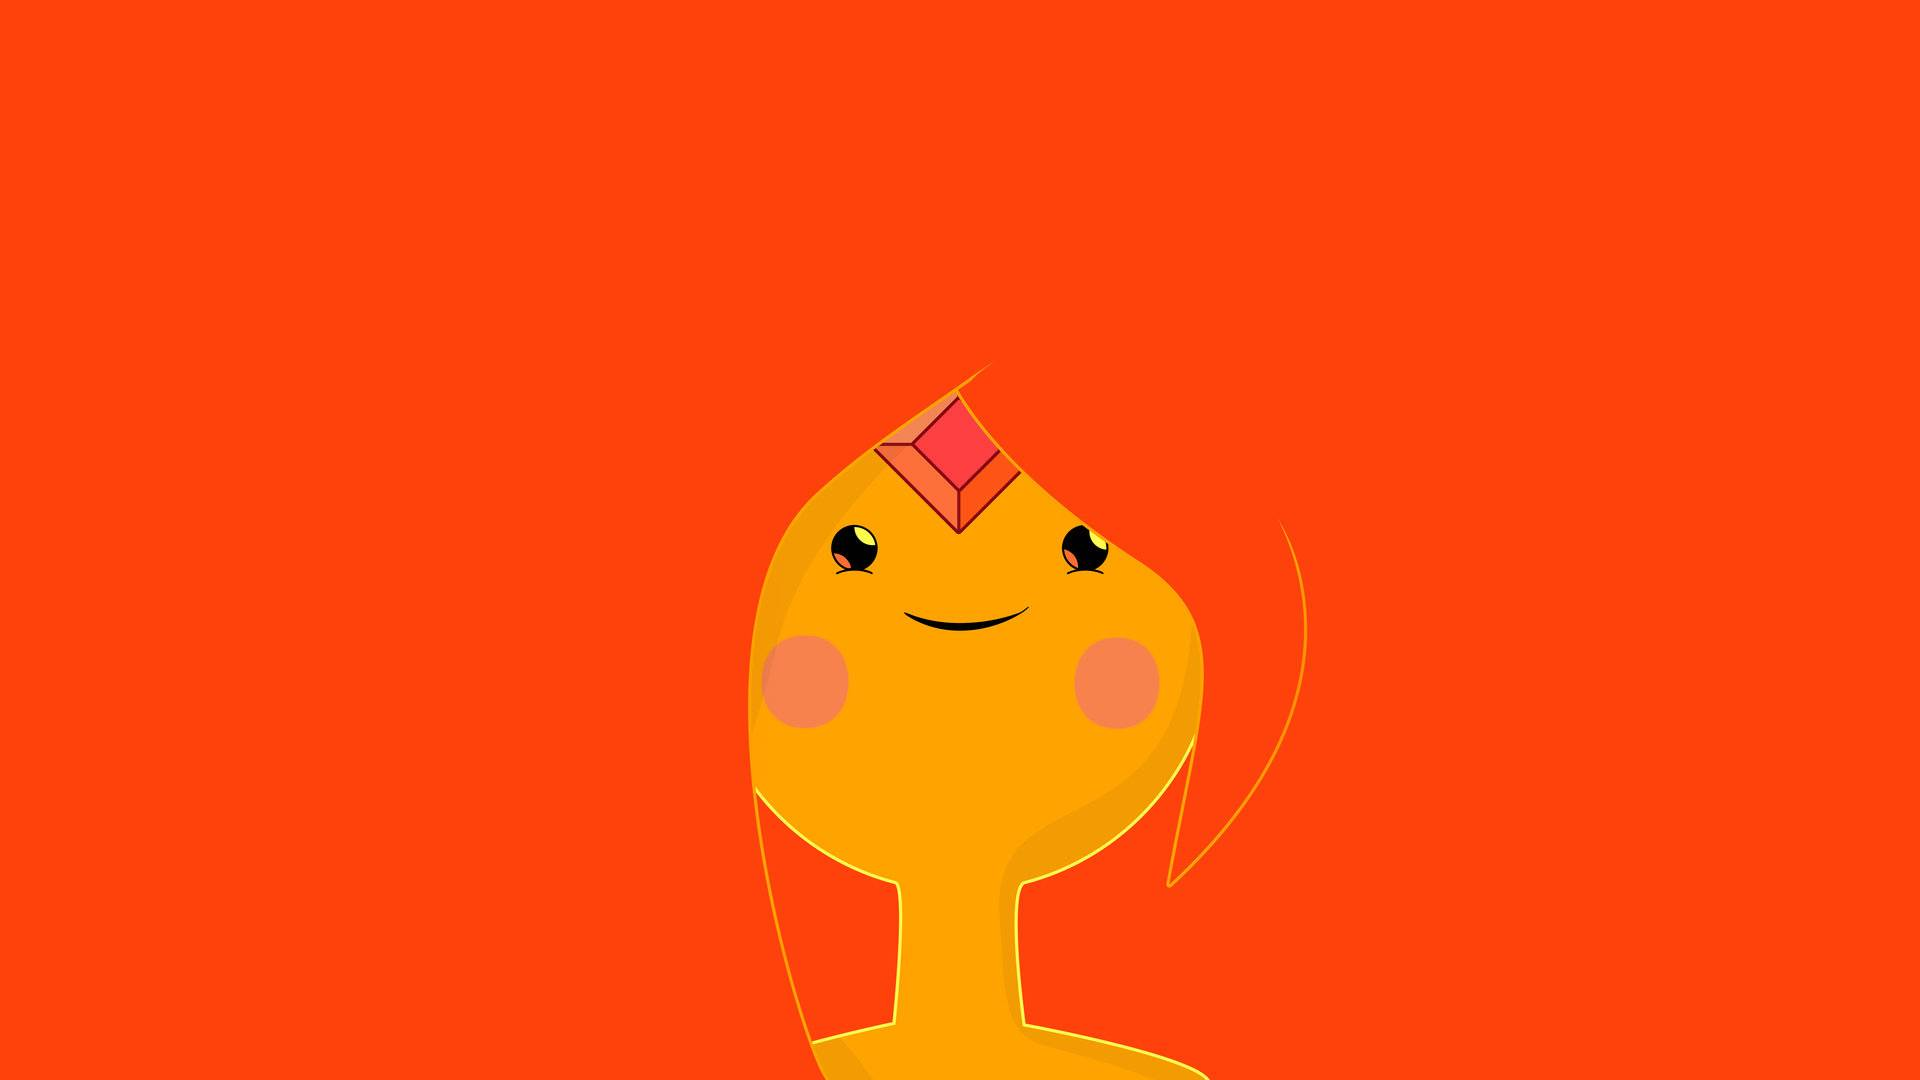 adventure time wallpapers download - photo #48